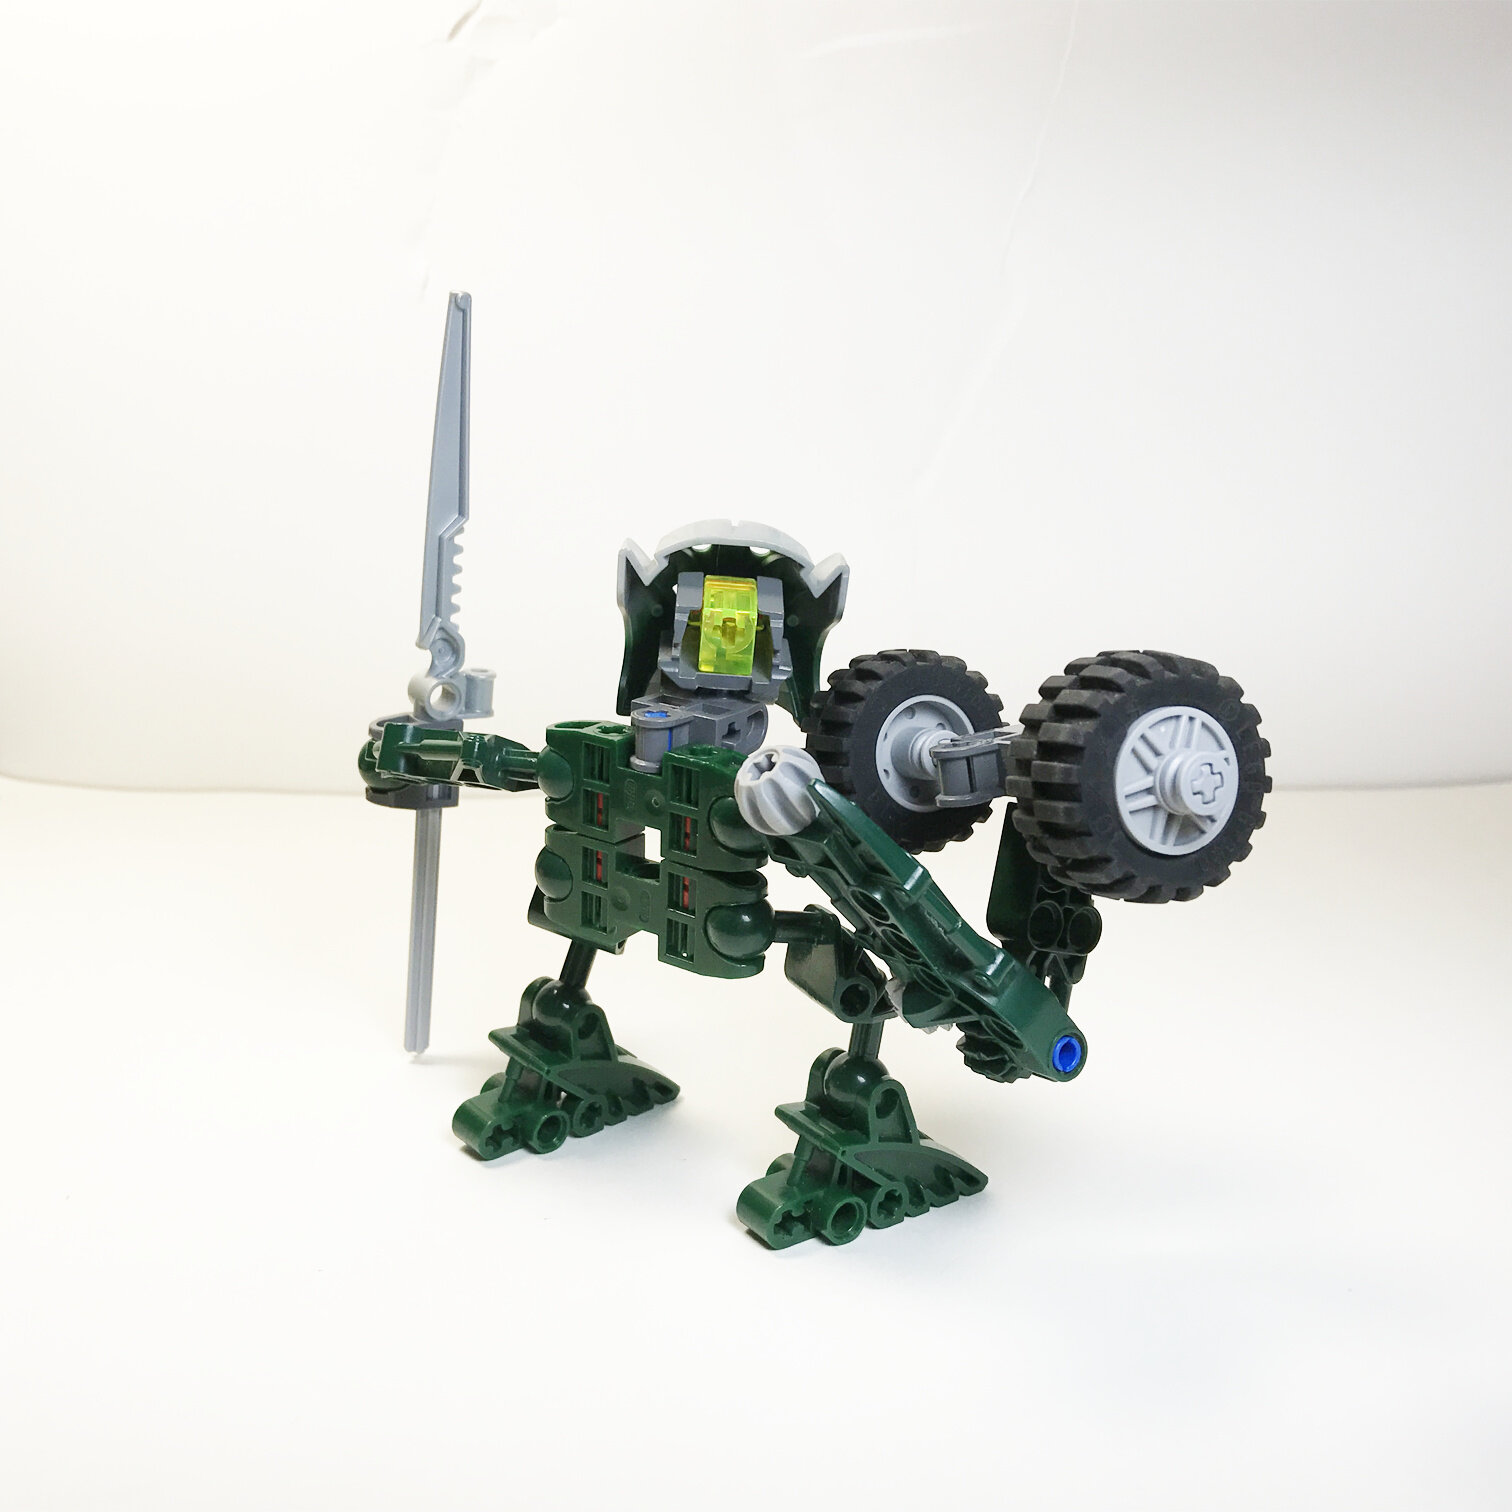 buff good guy - Lego Creations - The TTV Message Boards